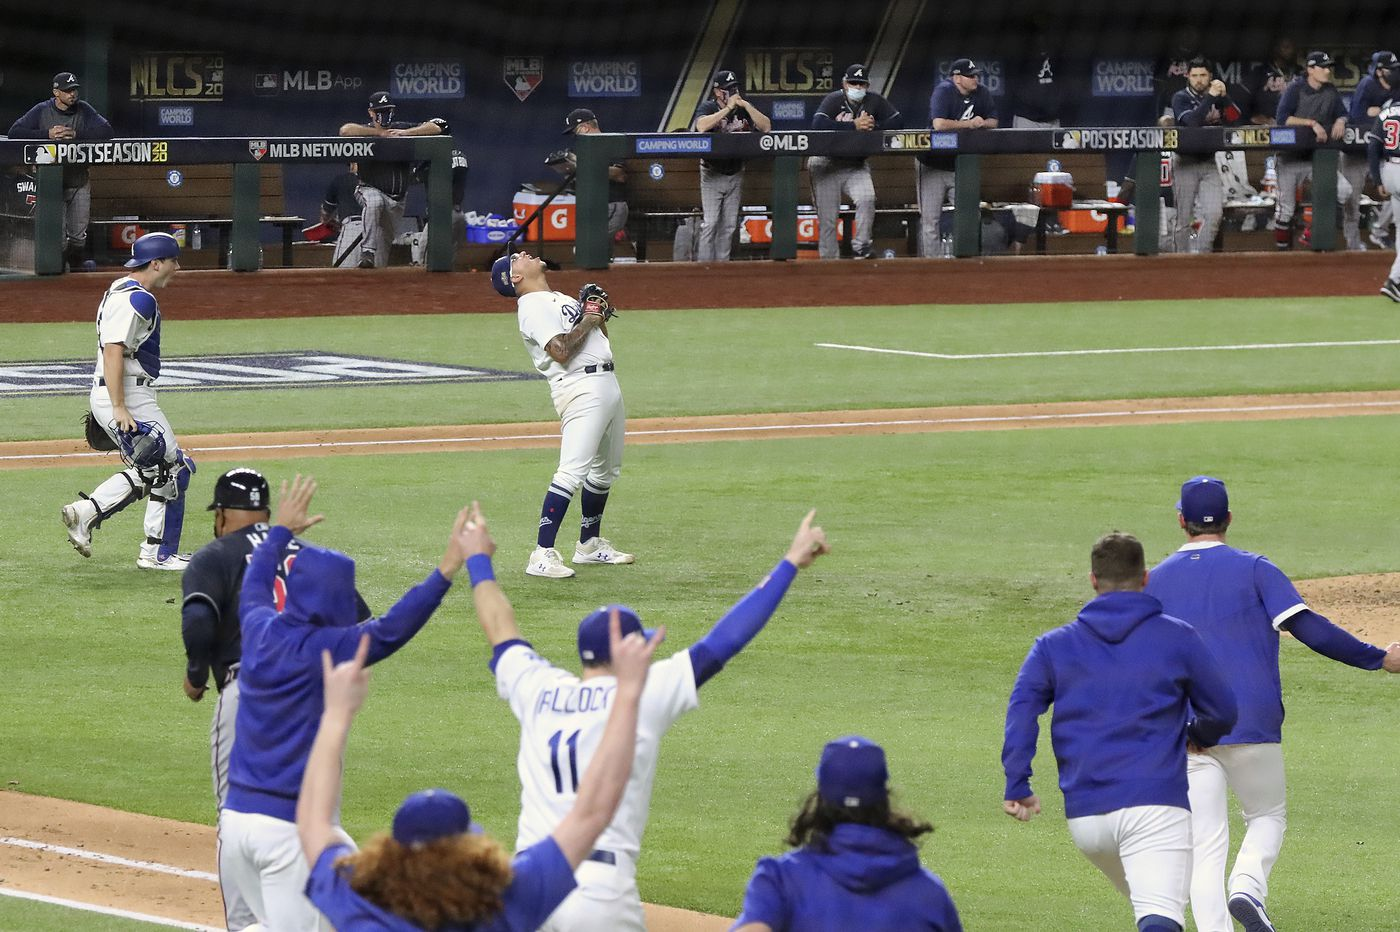 Dodgers advance to World Series, Chris Johnson says Titans have best RBs in NFL history, more sports news